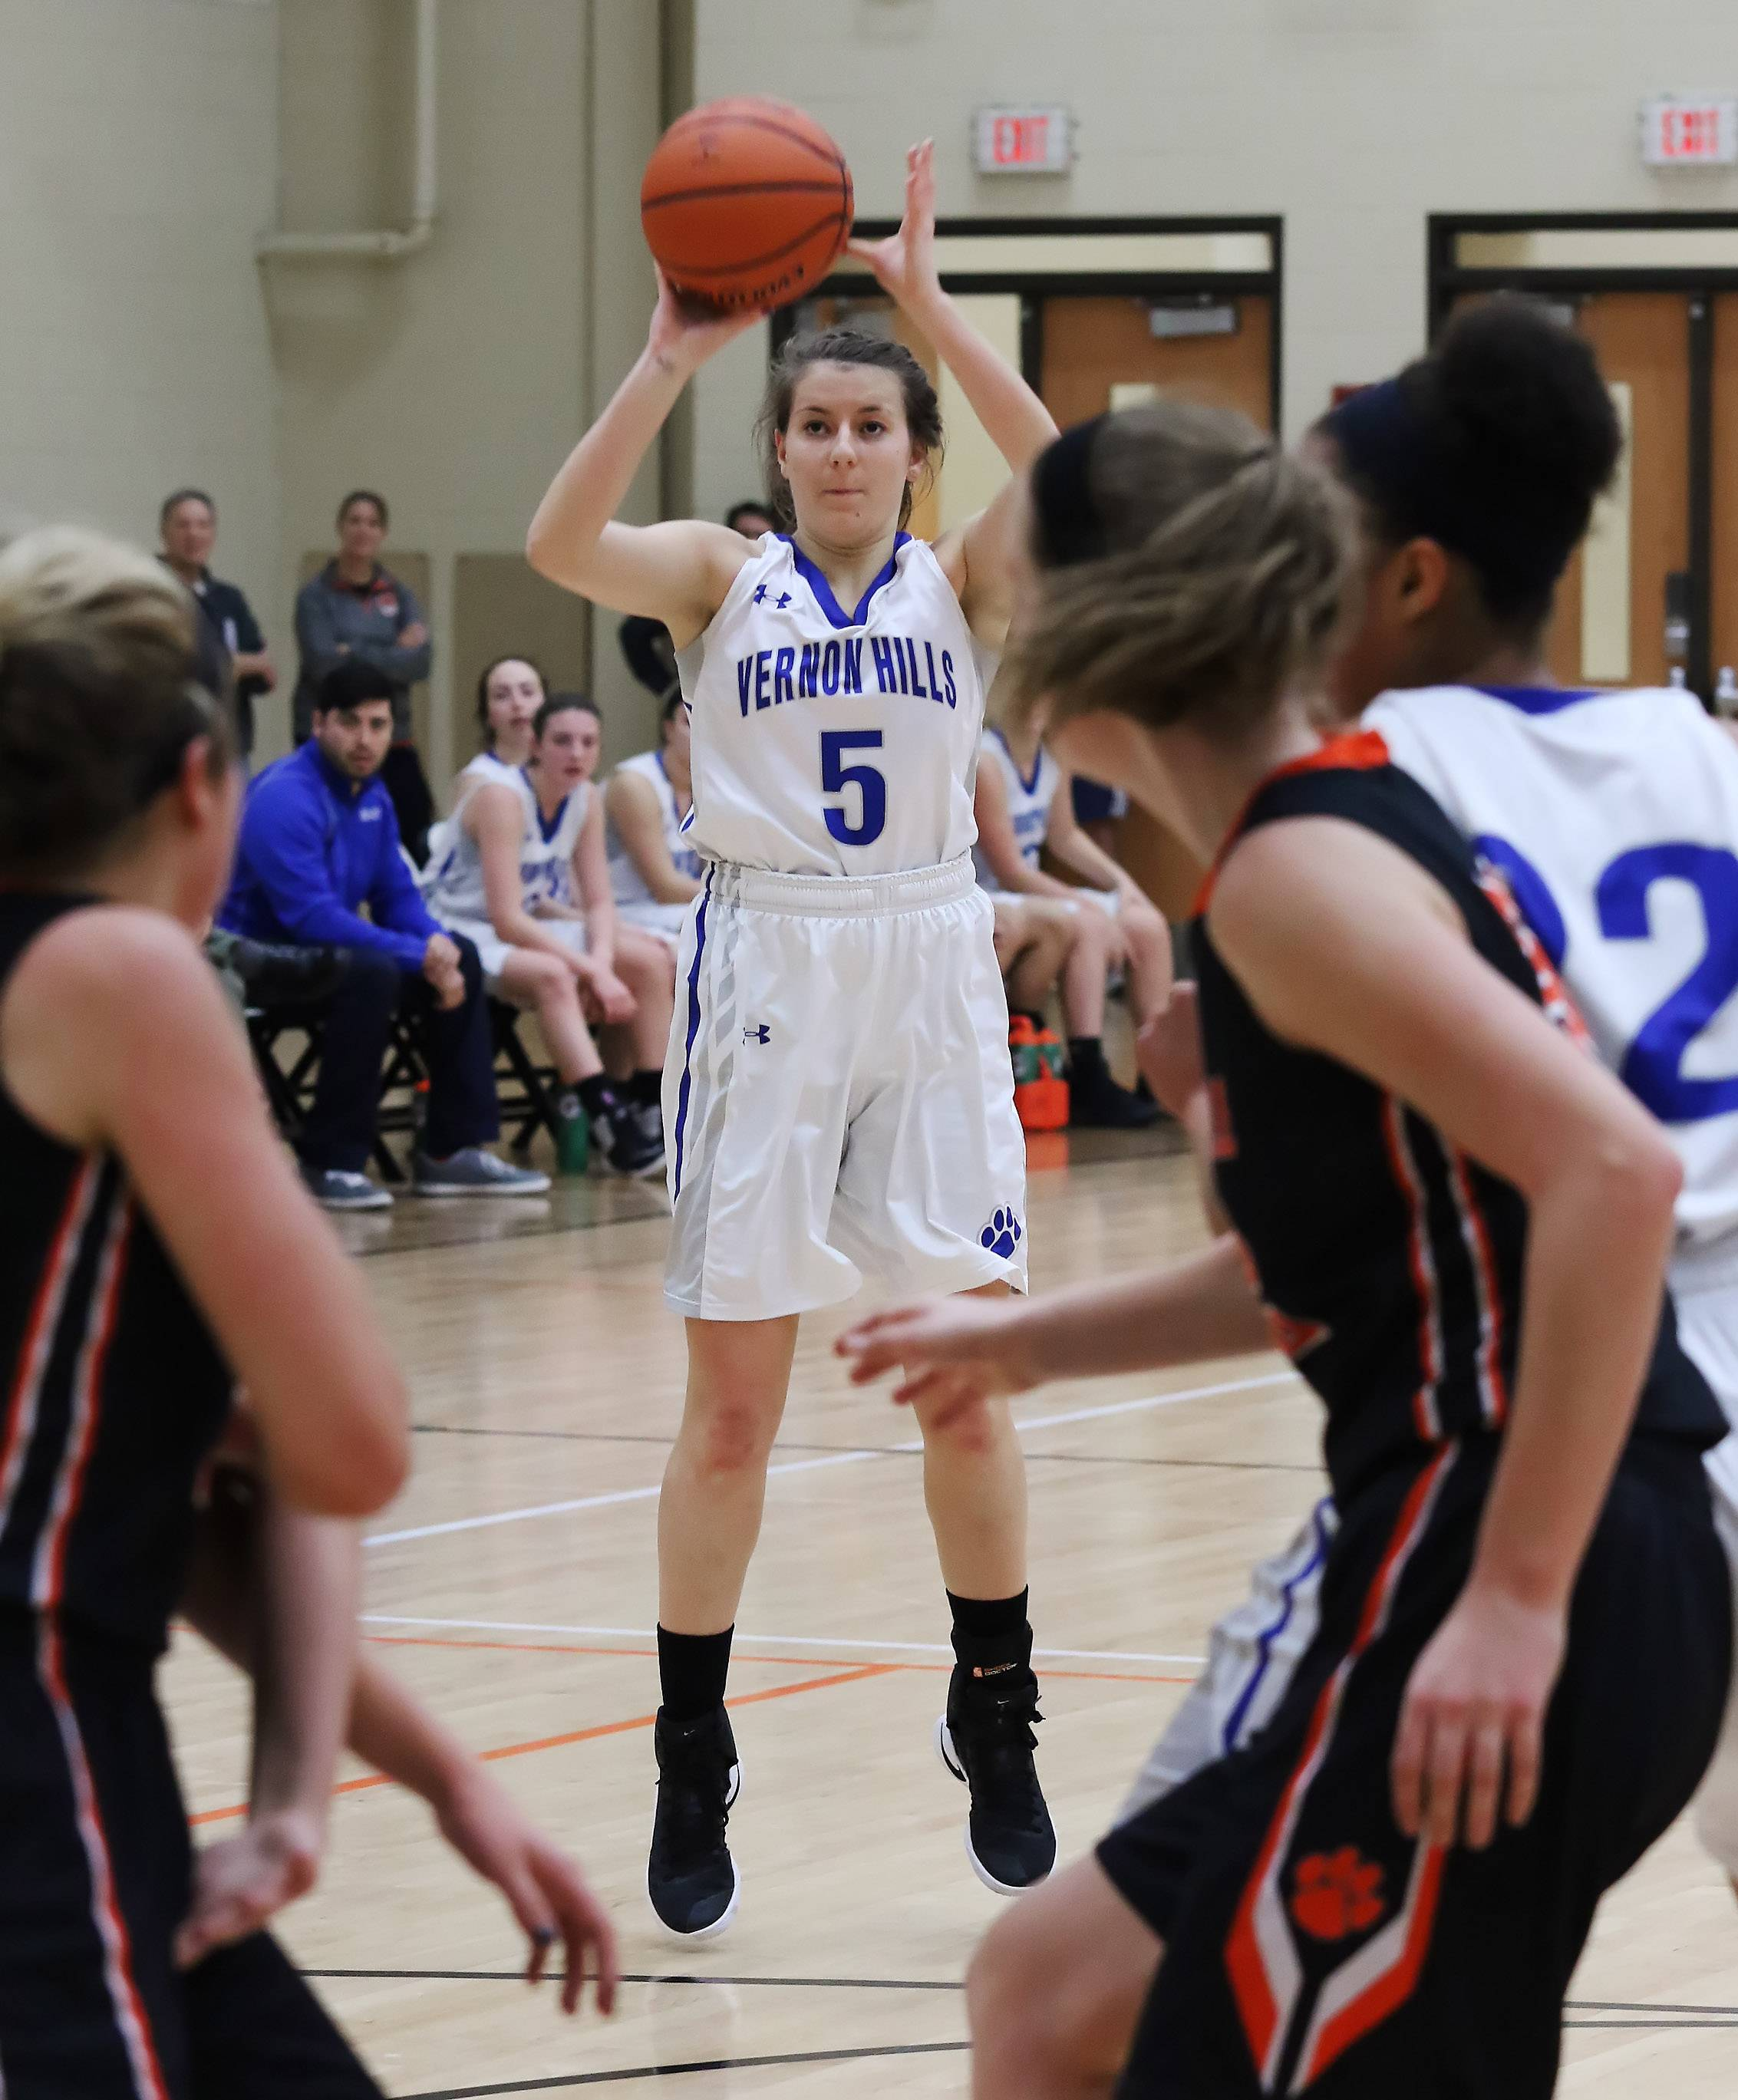 Vernon Hills guard Katie Burrows shoots a 3 against Libertyville during tournament play Thursday at Libertyville.